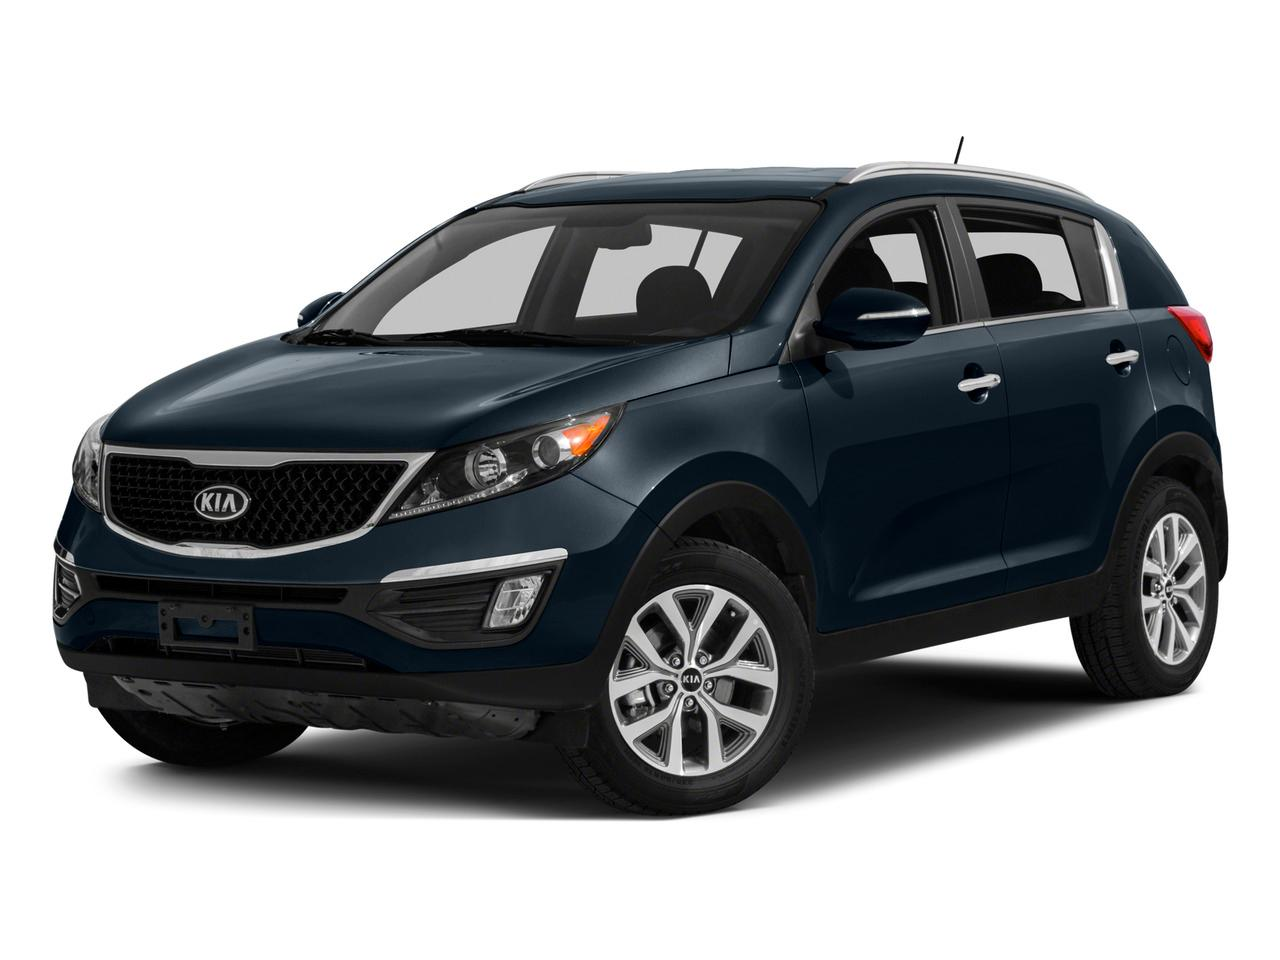 2015 Kia Sportage Vehicle Photo in Spokane, WA 99207